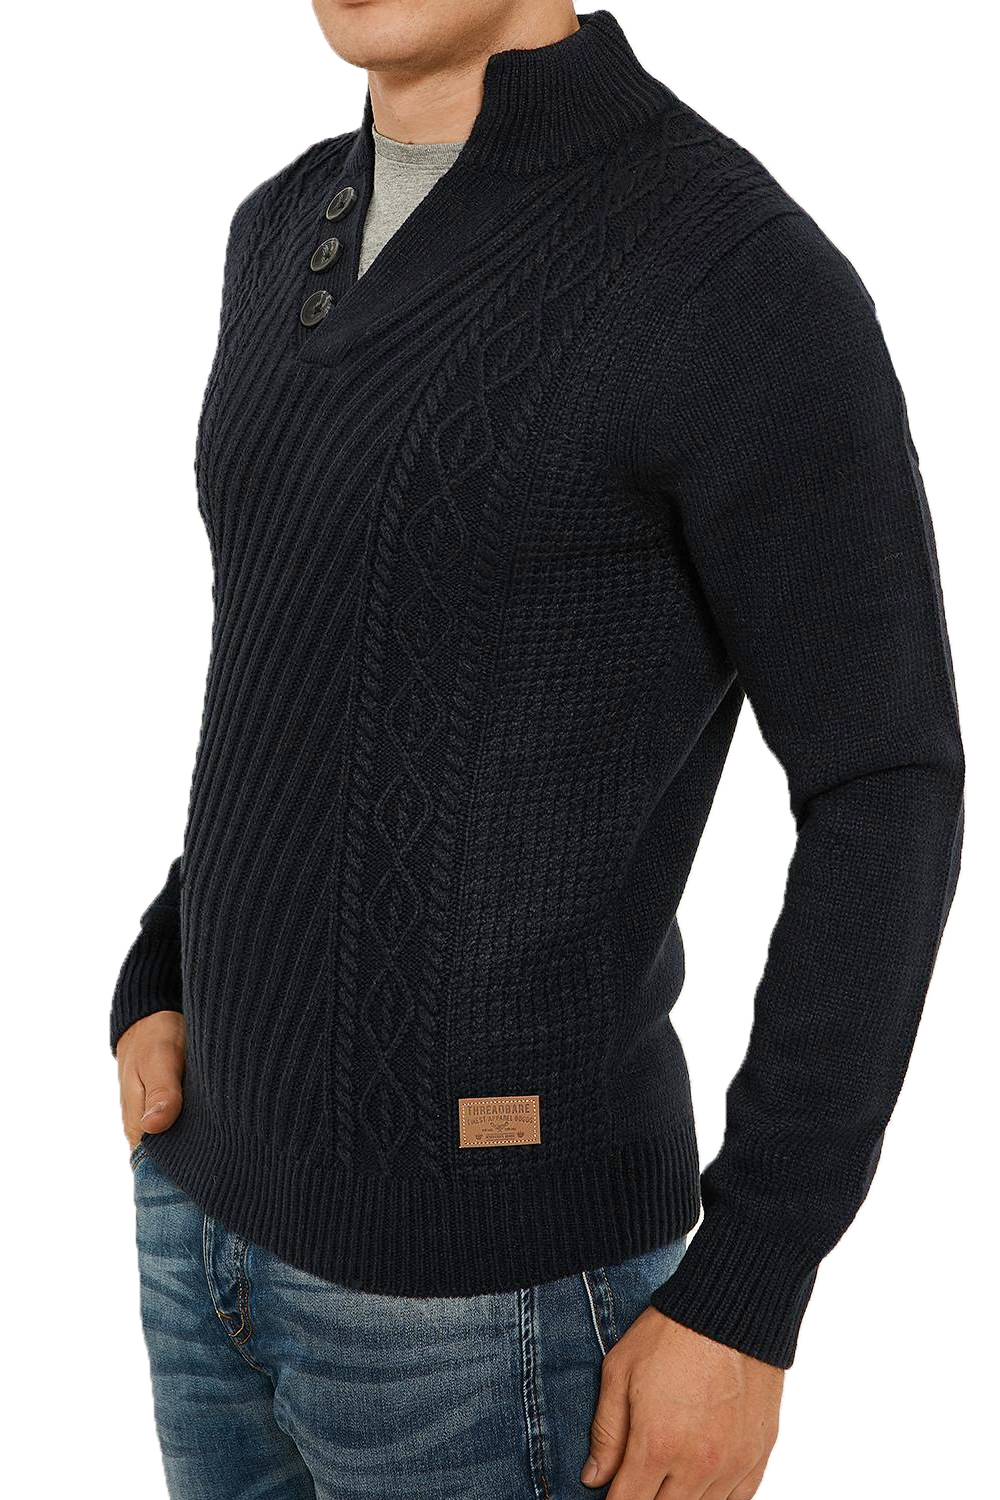 Threadbare-Wray-Mens-Top-Cable-Knited-Designer-Luxurious-Wool-Mix-Raglan-Jumpers thumbnail 10